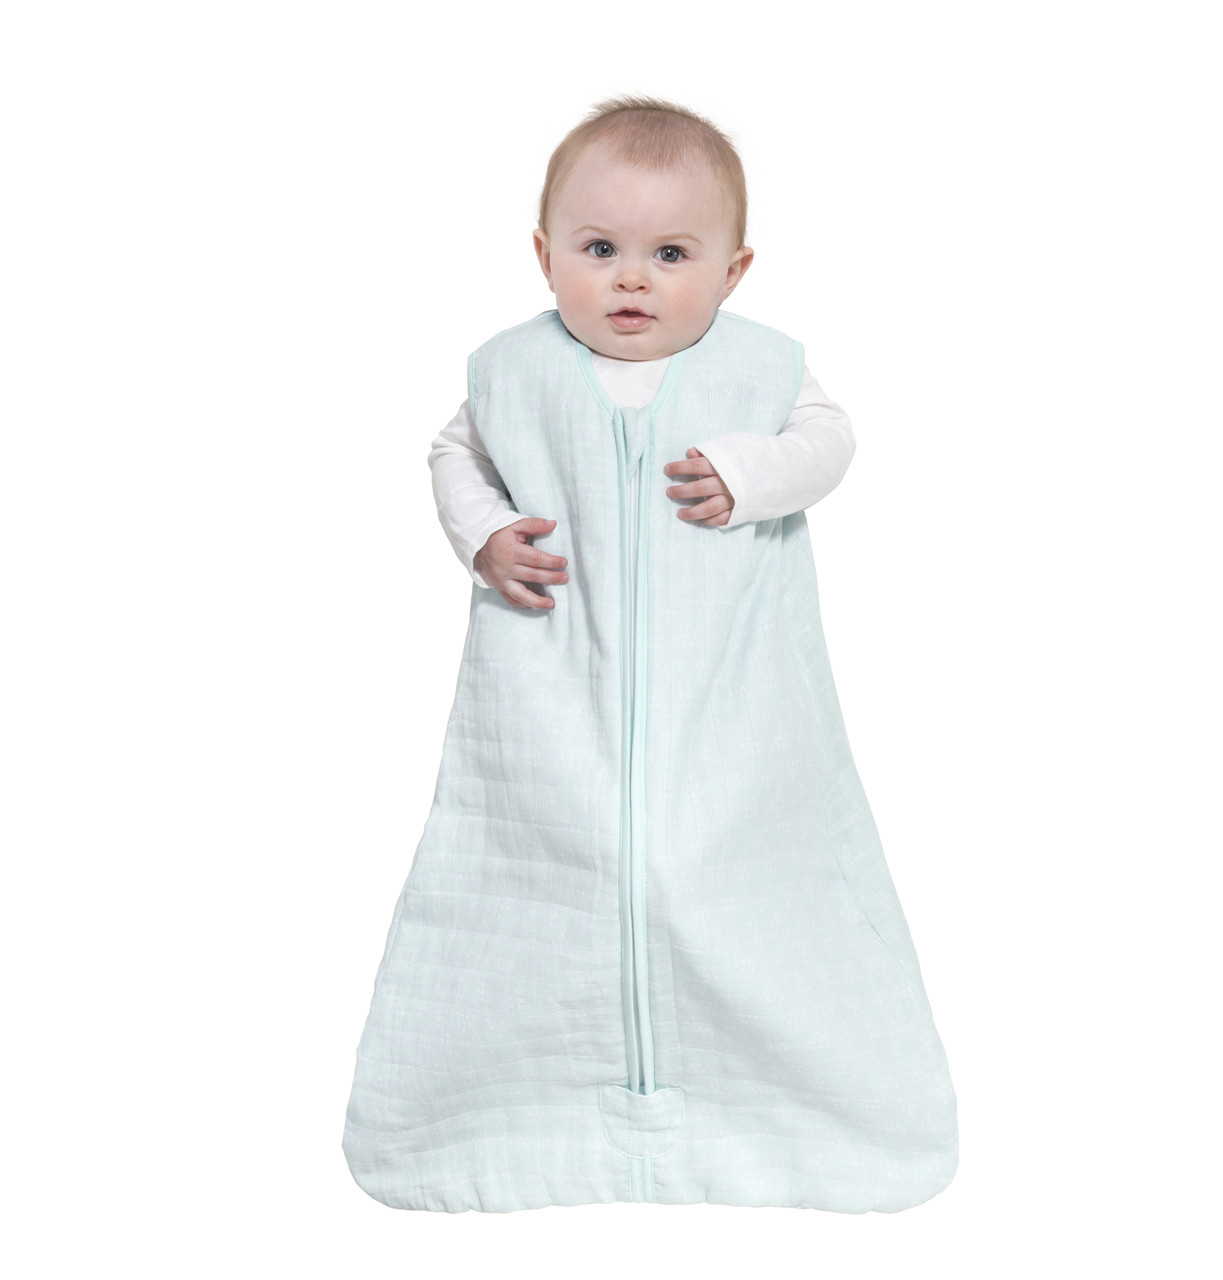 new product f4cc7 5f7ec HALO® SleepSack® wearable blanket platinum quilted muslin | Mint Sketch  Pyramid